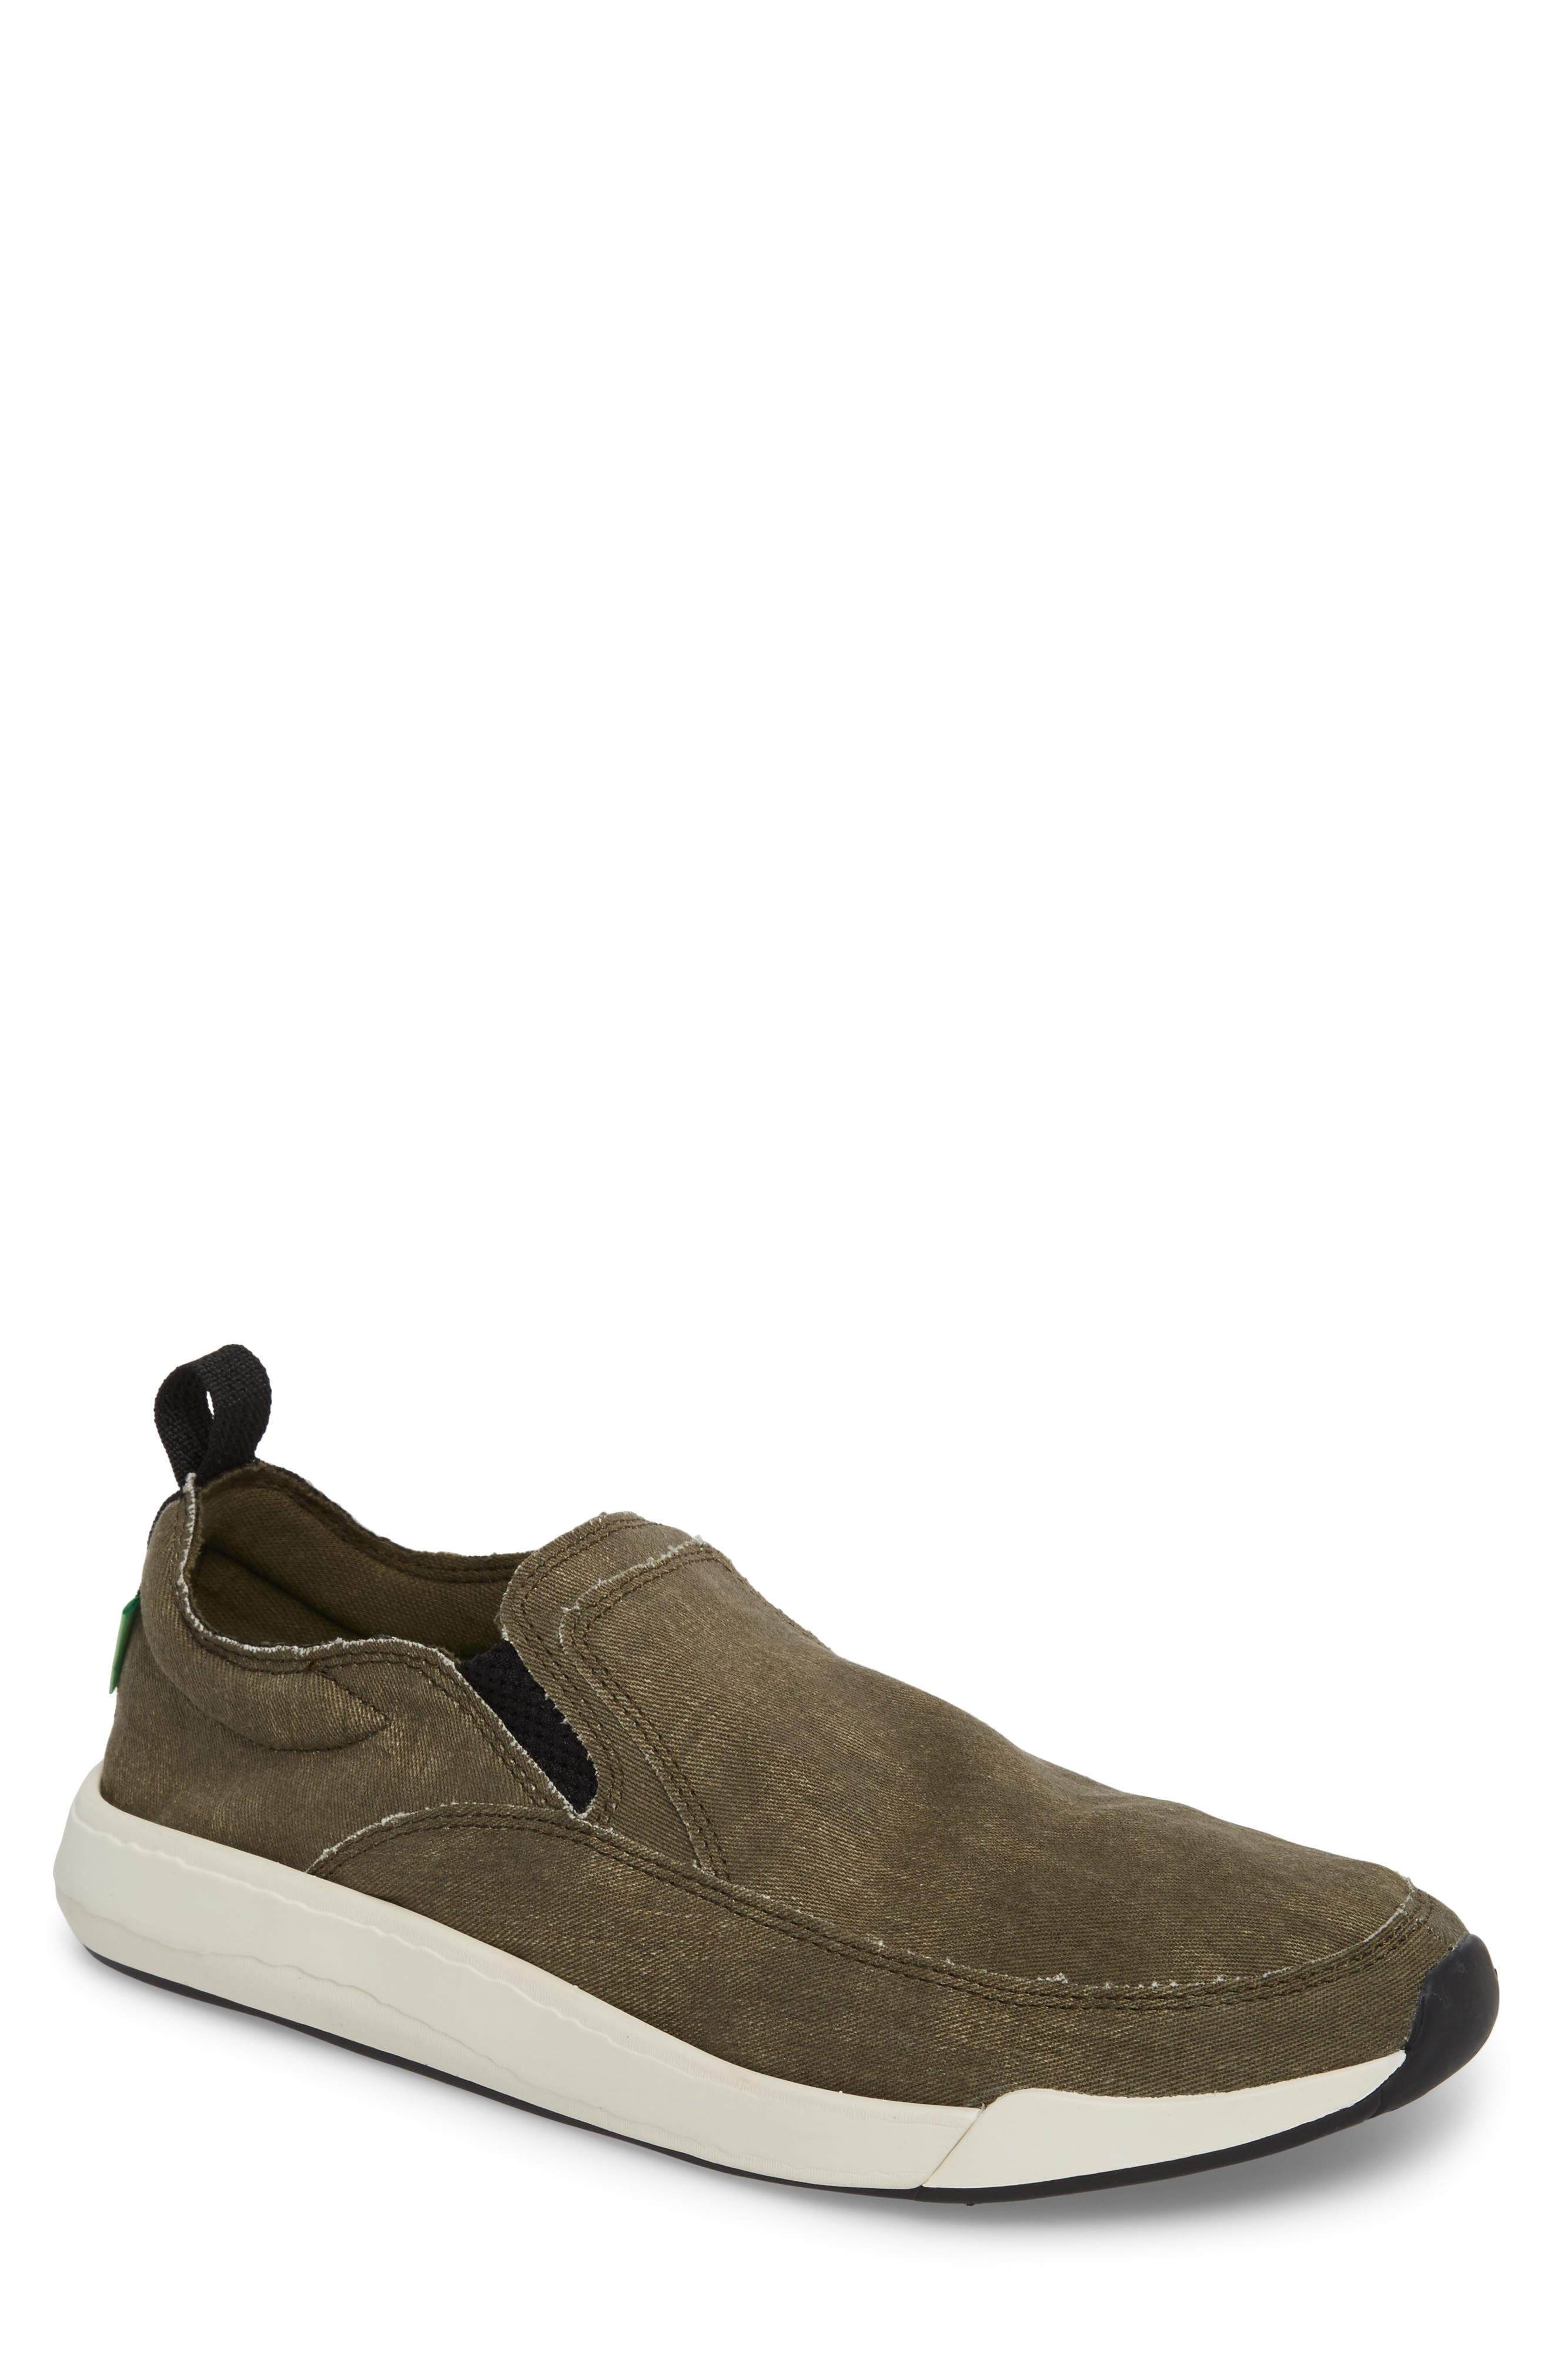 Chiba Quest Slip-On Sneaker,                         Main,                         color, Olive